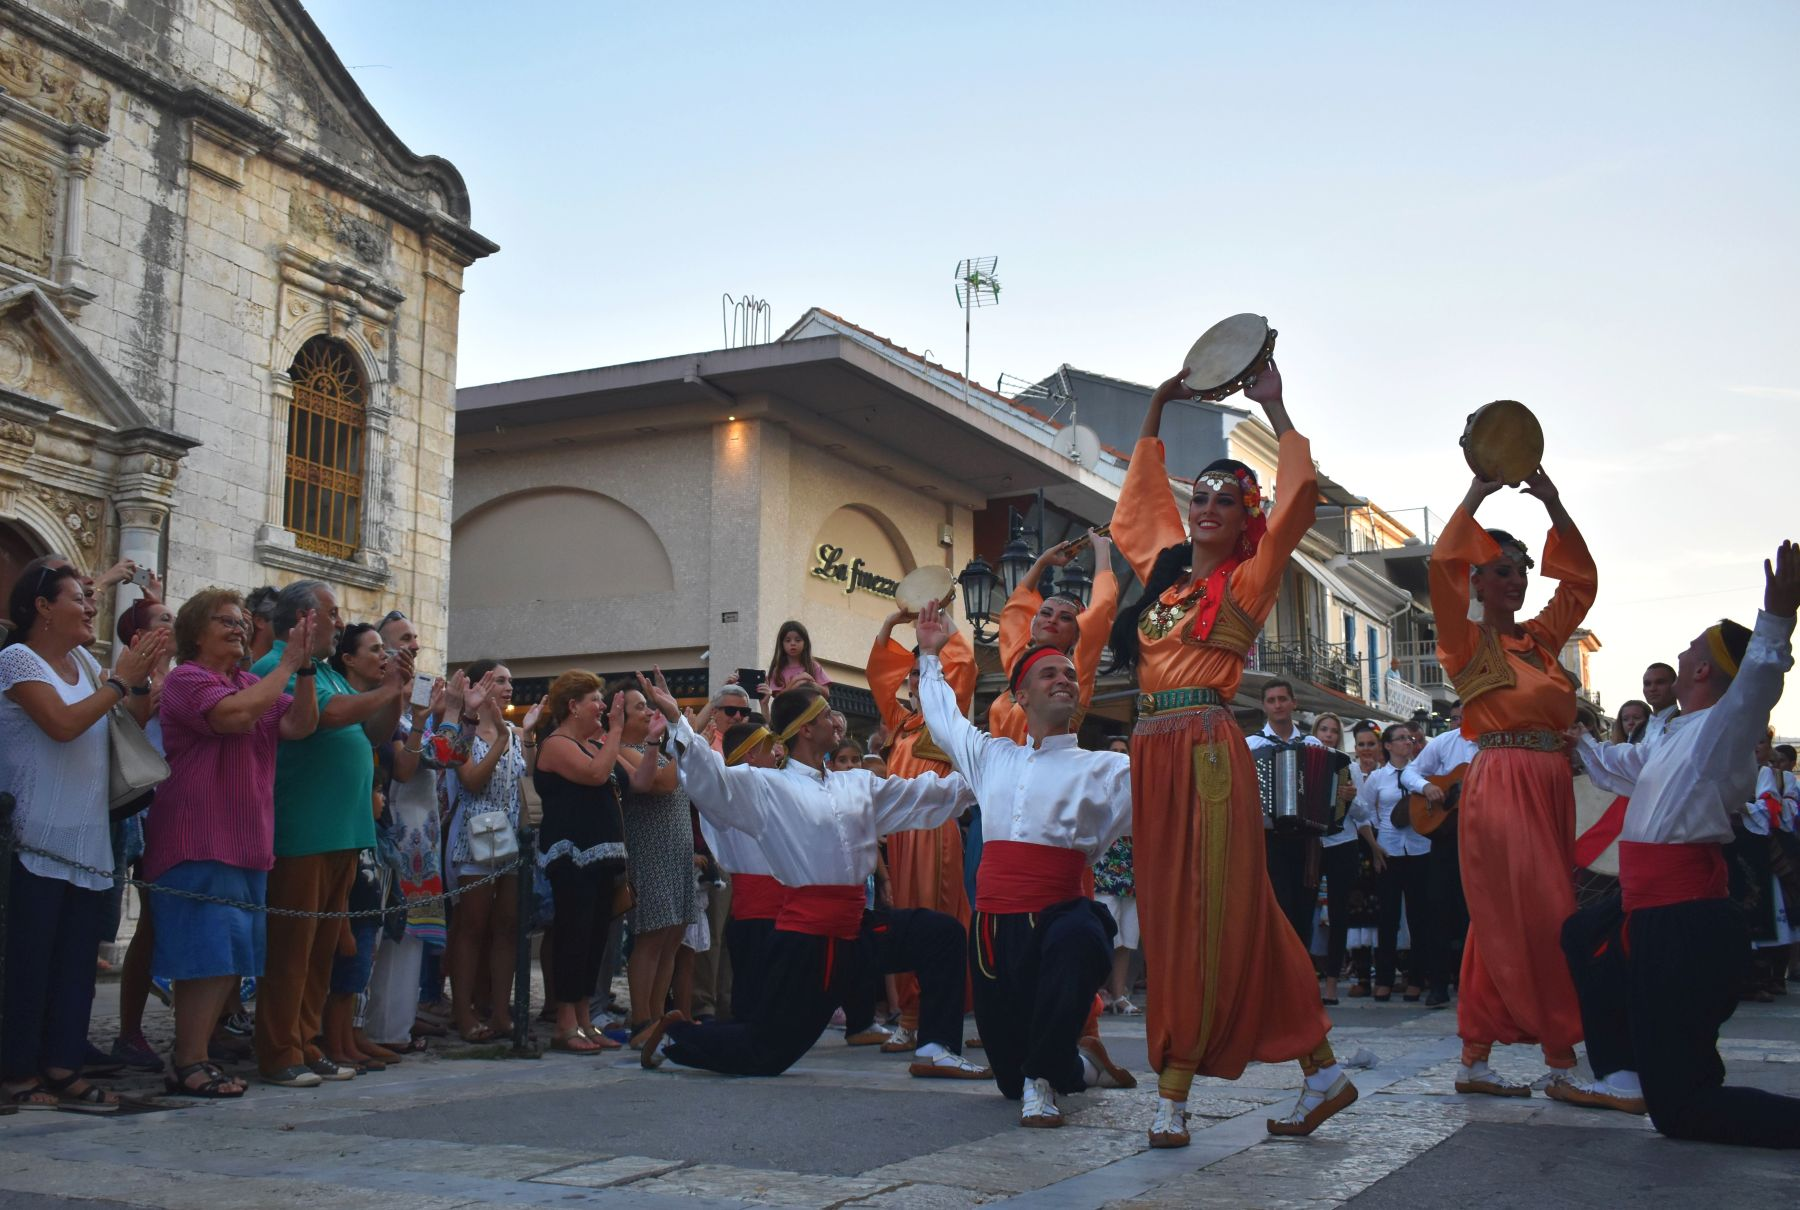 International Folklore Festival, dancing group in the streets of Lefkada